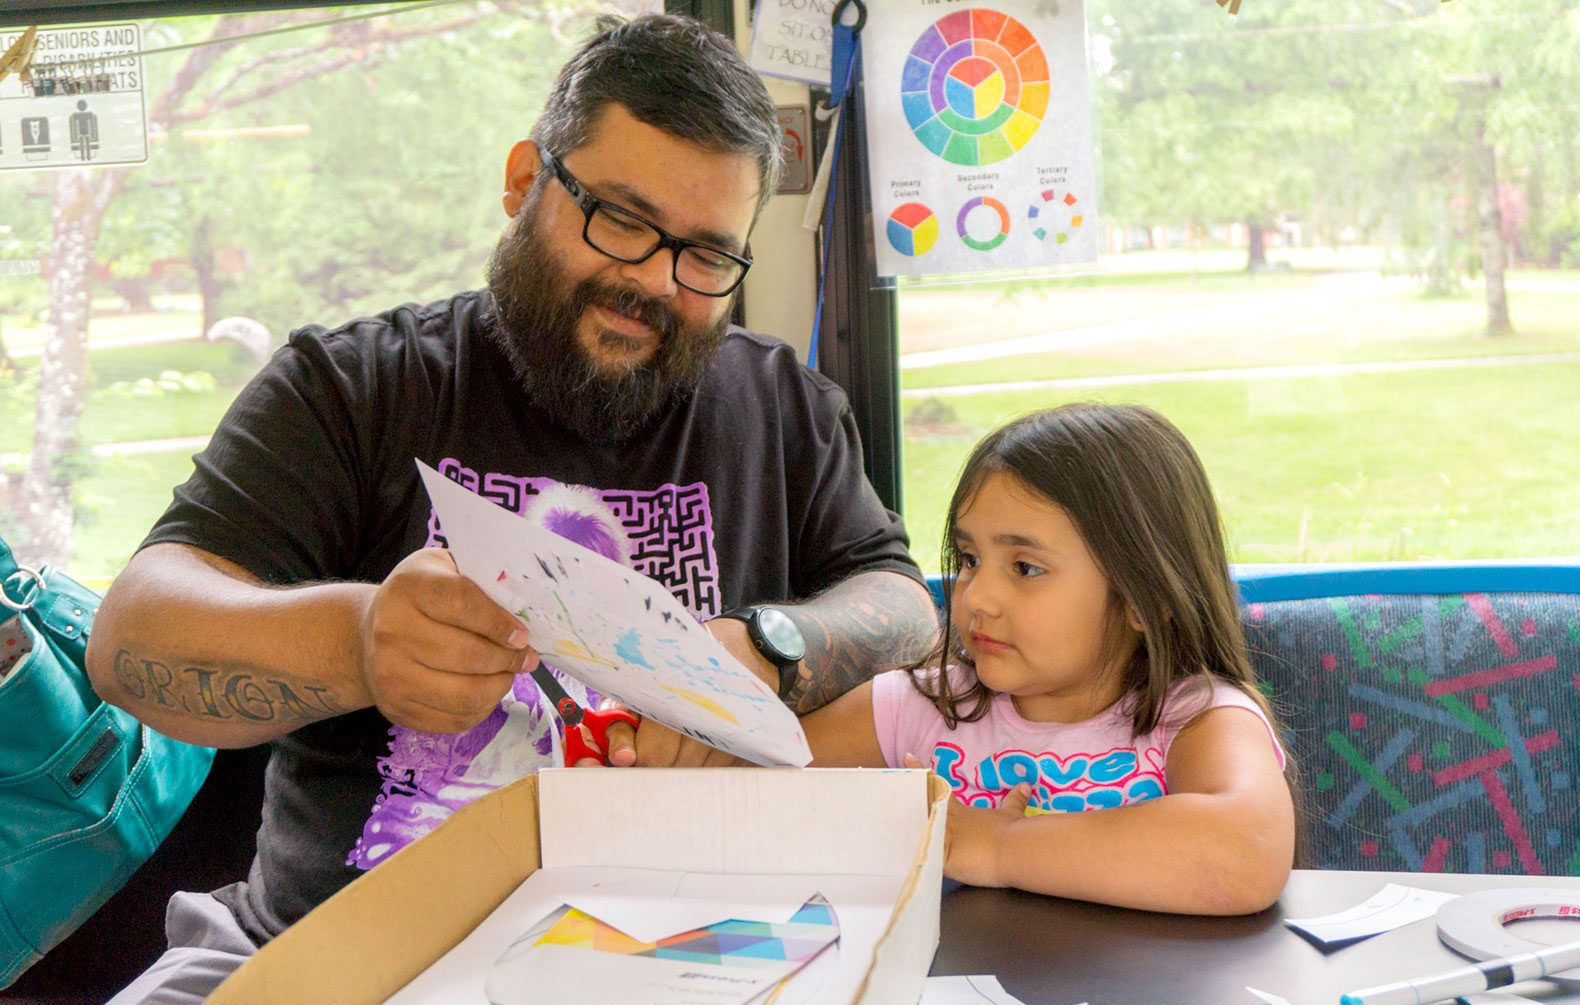 Since 2015, the bus has been visiting rural districts, low-income housing areas, and parks in and around Eugene, Oregon, to give kids access to art.